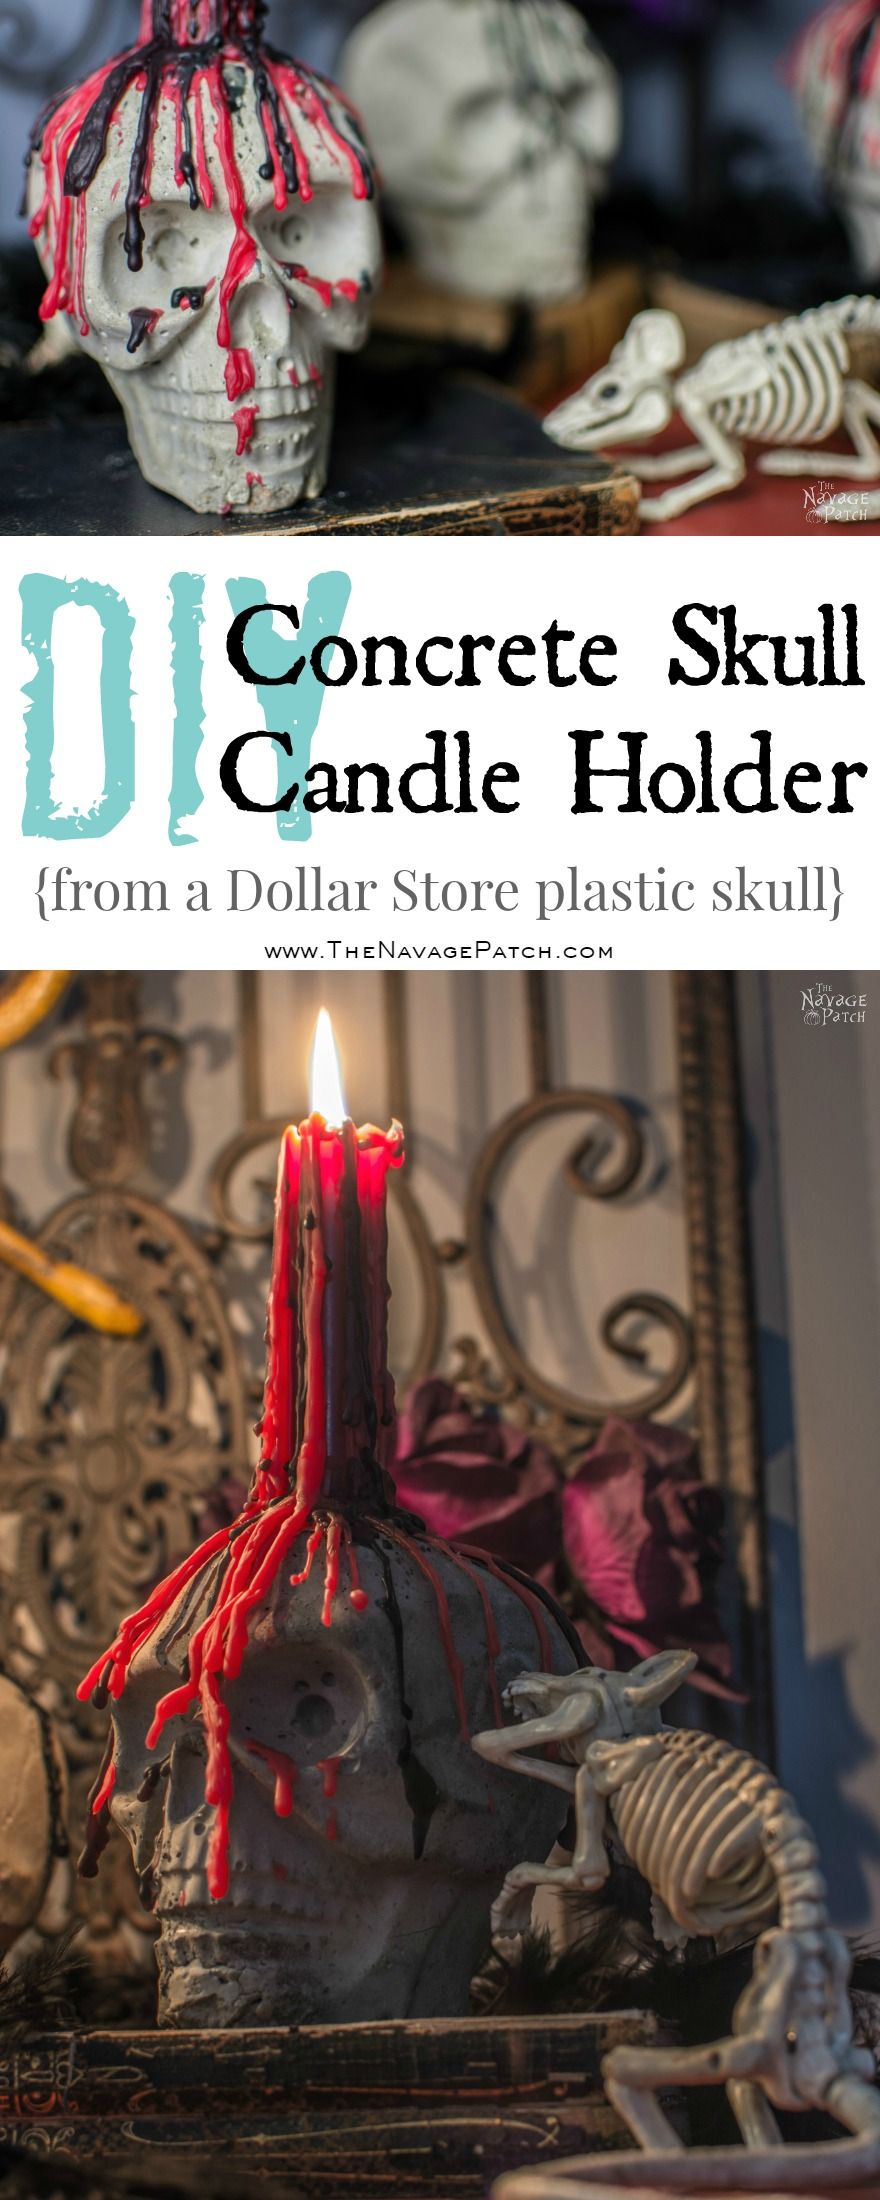 DiY Concrete Skull Candle Holder   DIY Halloween decor   How to make a concrete candle holder   Dollar store crafts   Gothic decor for Halloween   Easy & budget crafts   DIY Halloween prop   Spooky and gothic decor   Upcycled Halloween decor   TheNavagePatch.com